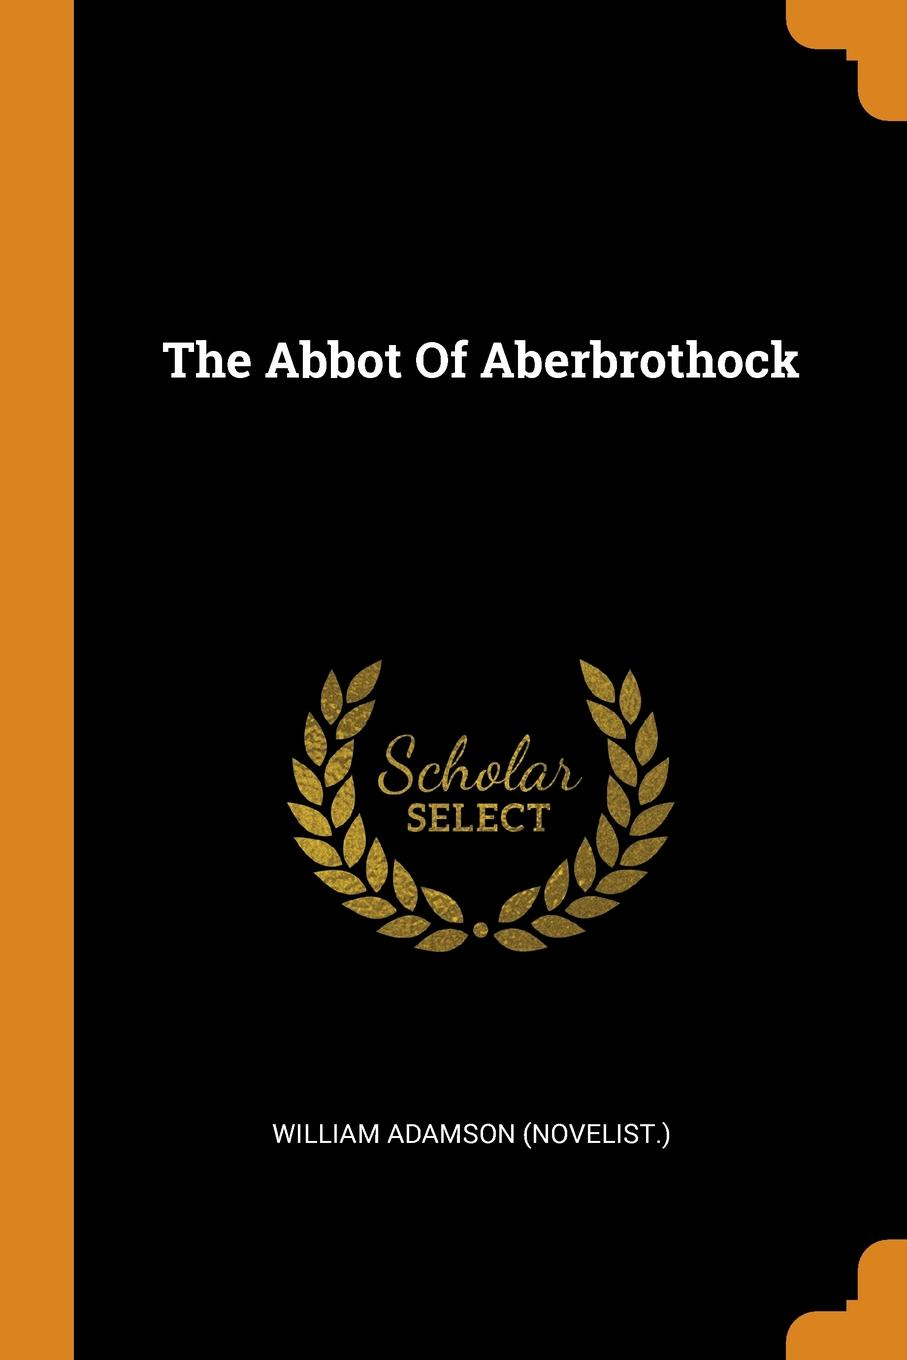 The Abbot Of Aberbrothock